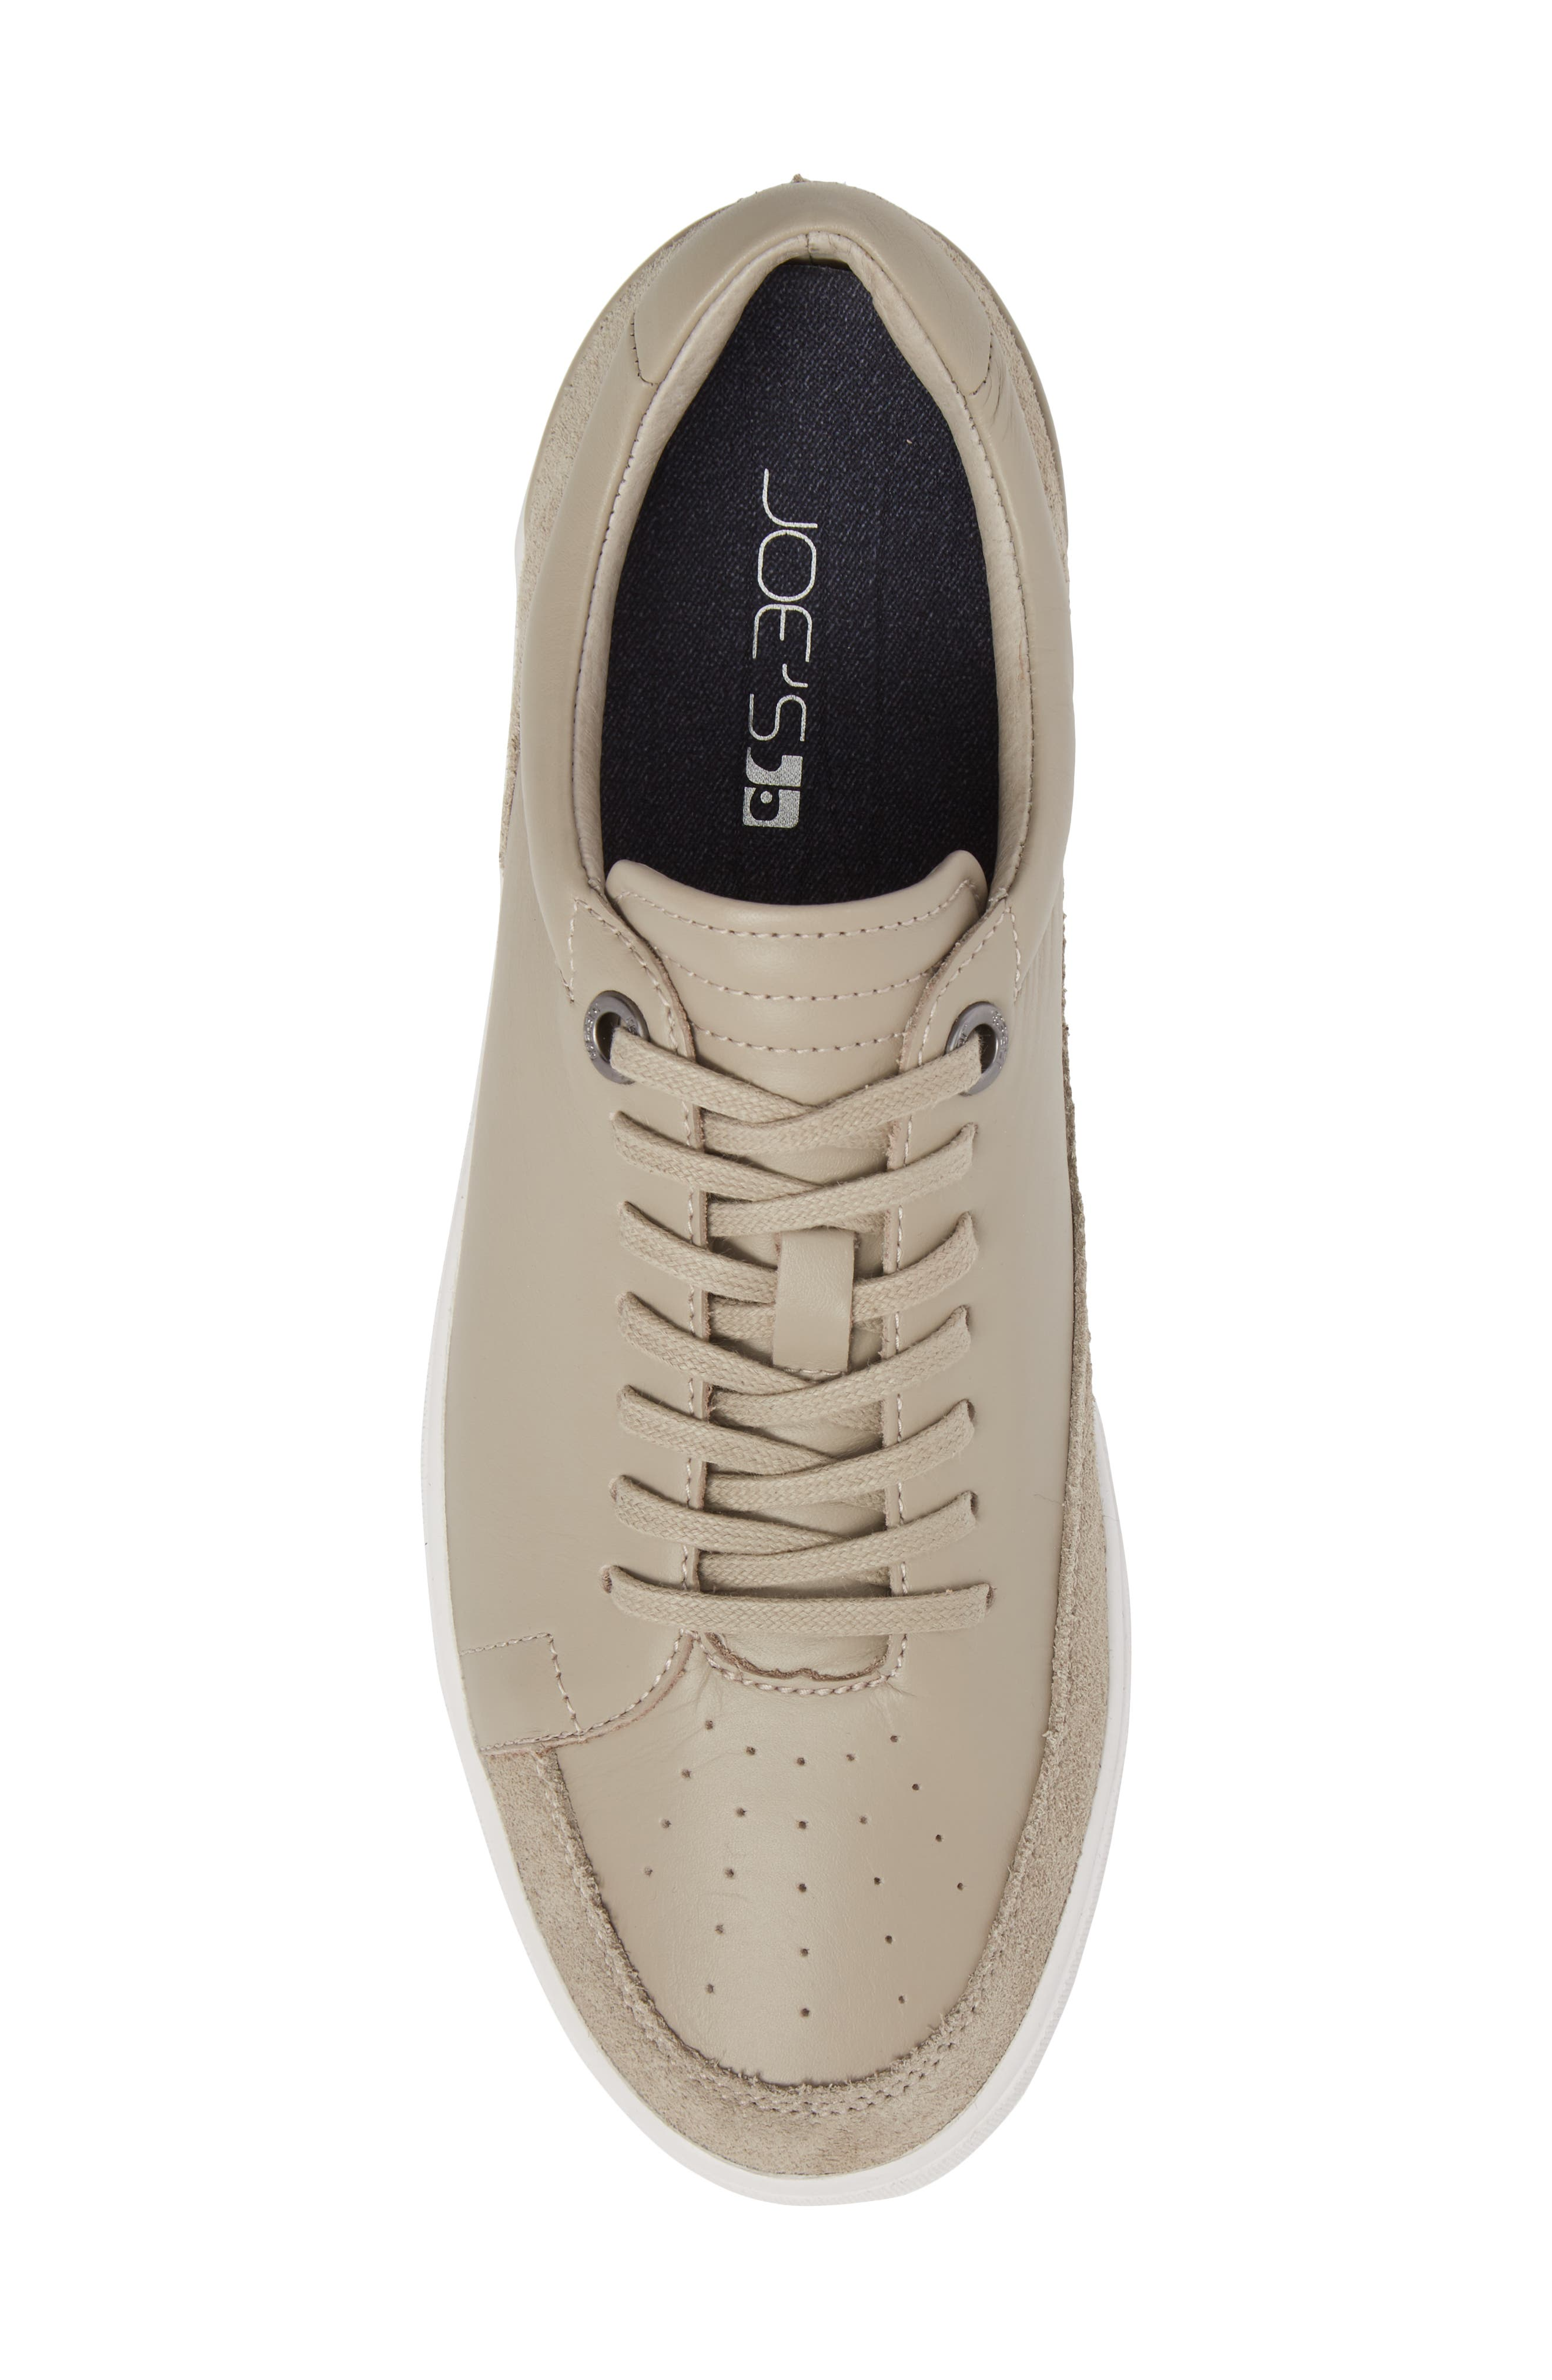 Joe Classic Low Top Sneaker,                             Alternate thumbnail 5, color,                             STONE LEATHER